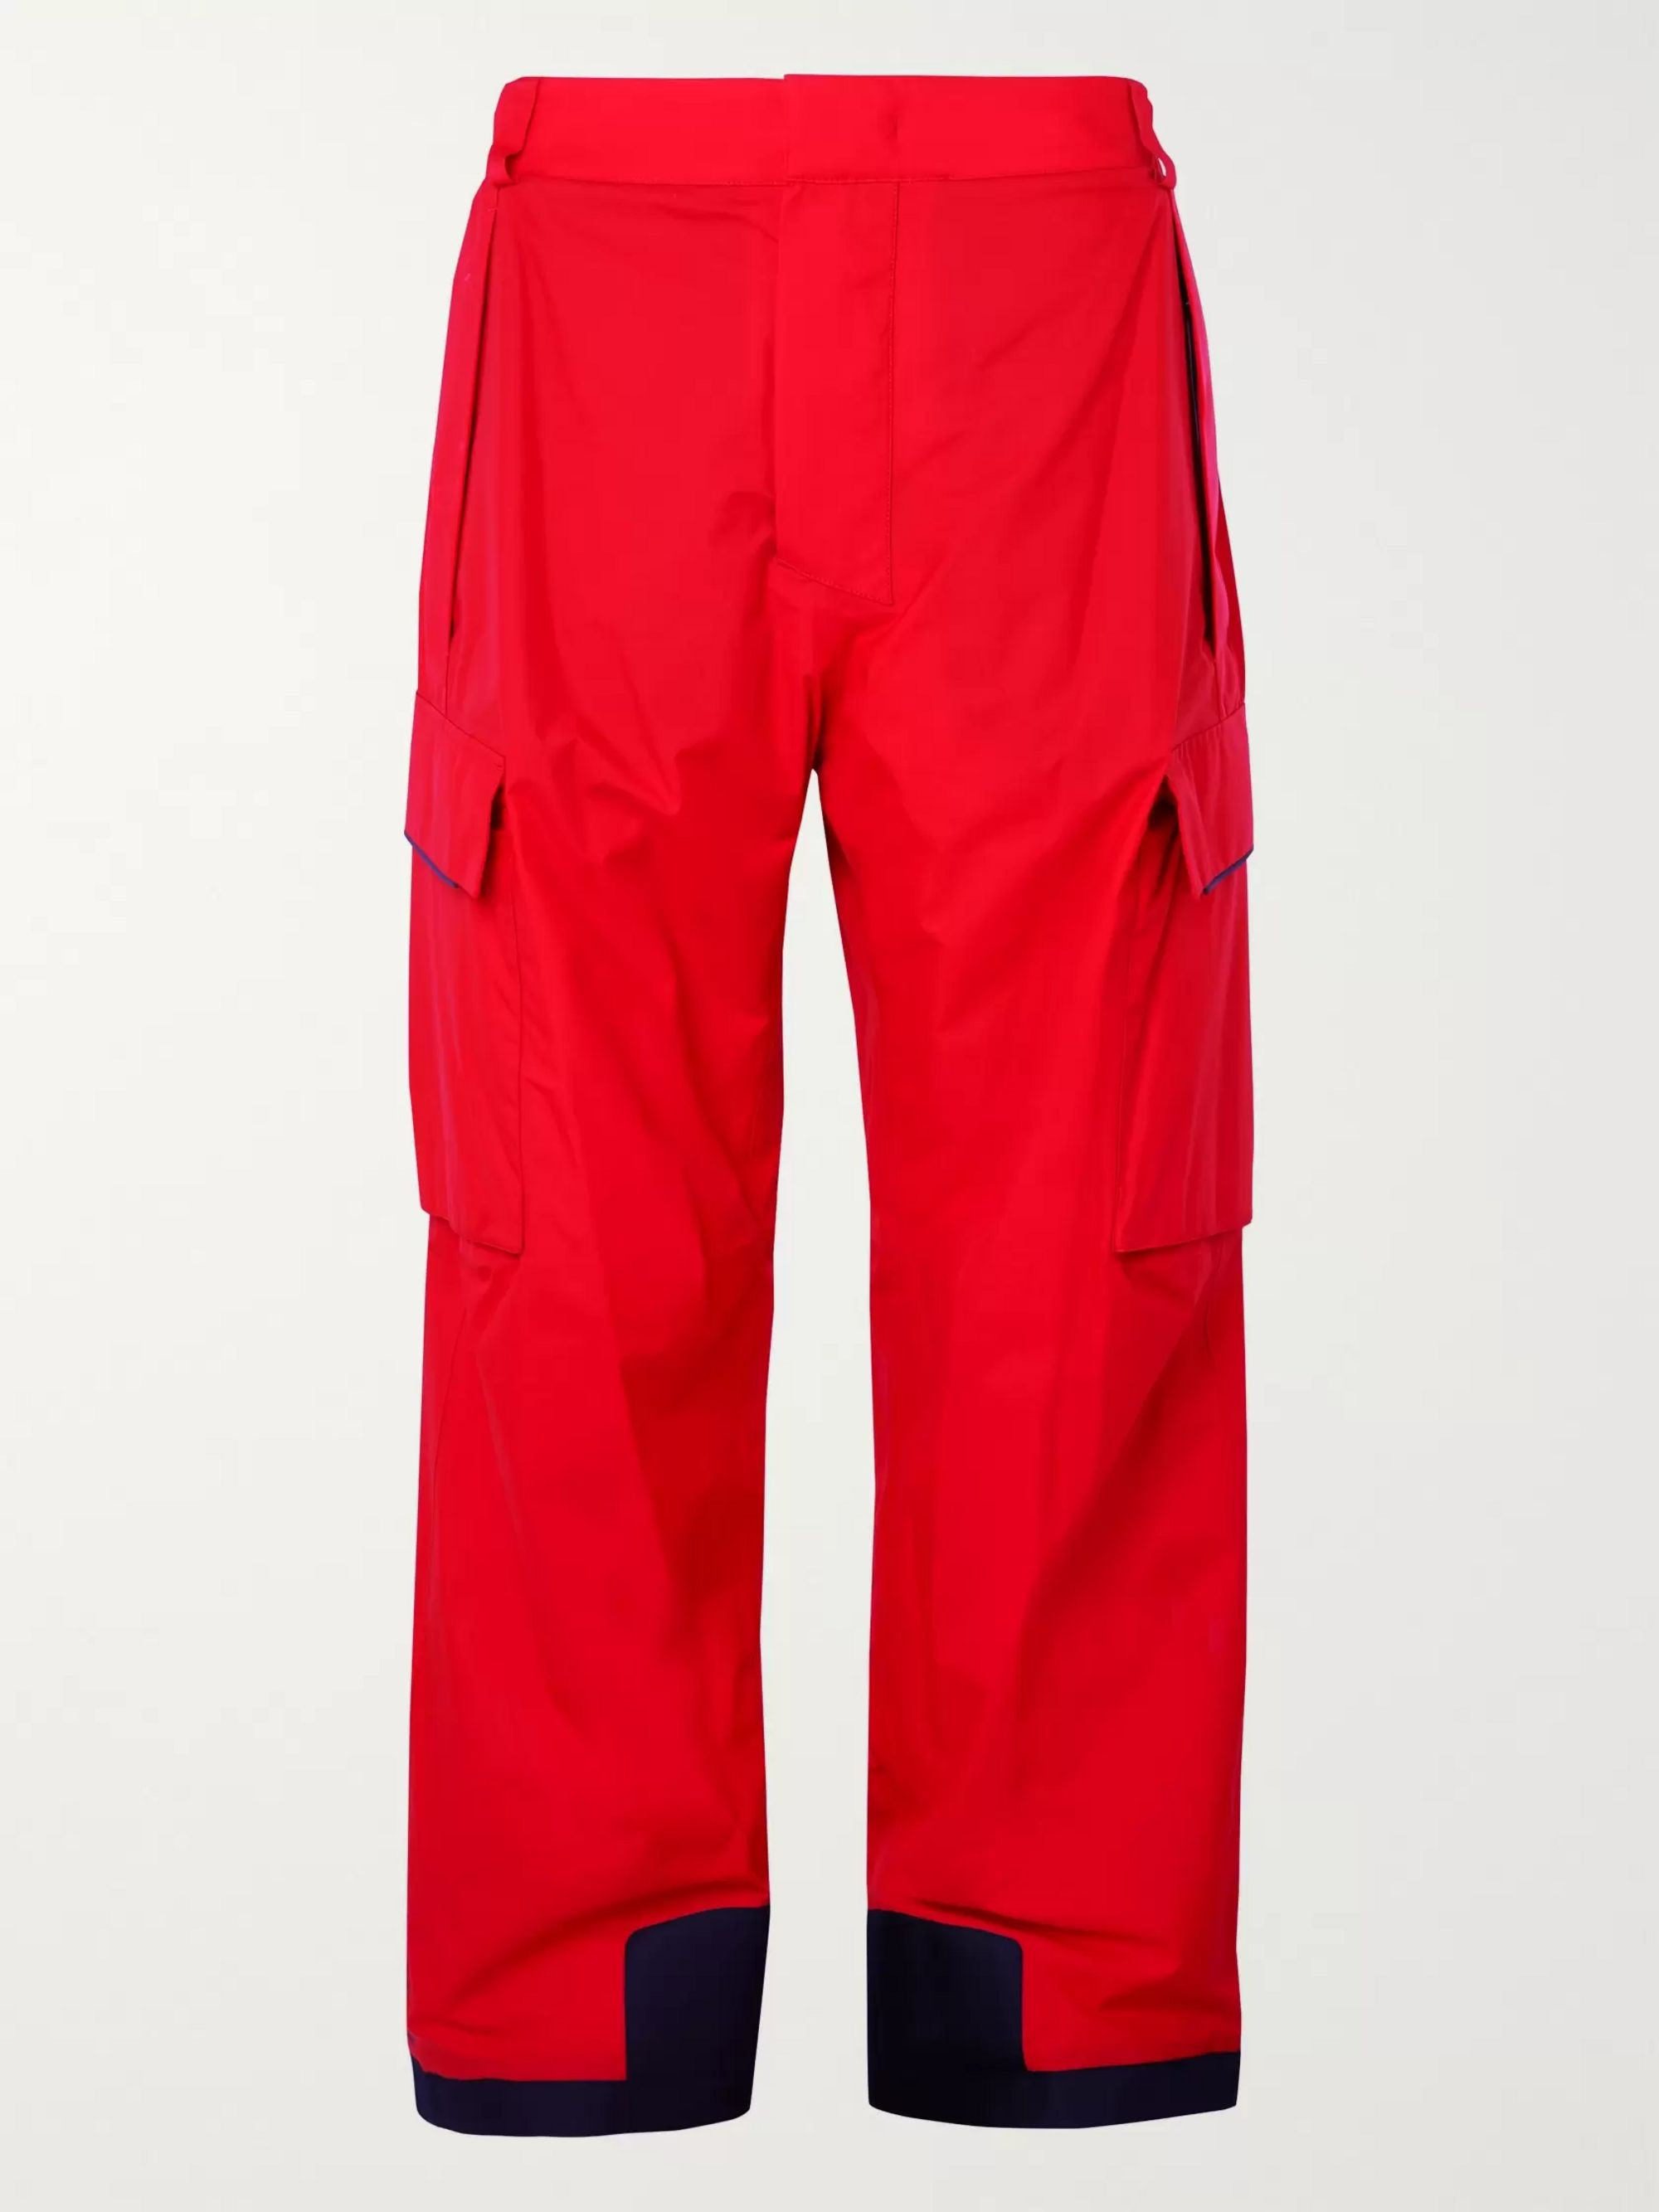 Moncler Grenoble GORE-TEX Ski Trousers